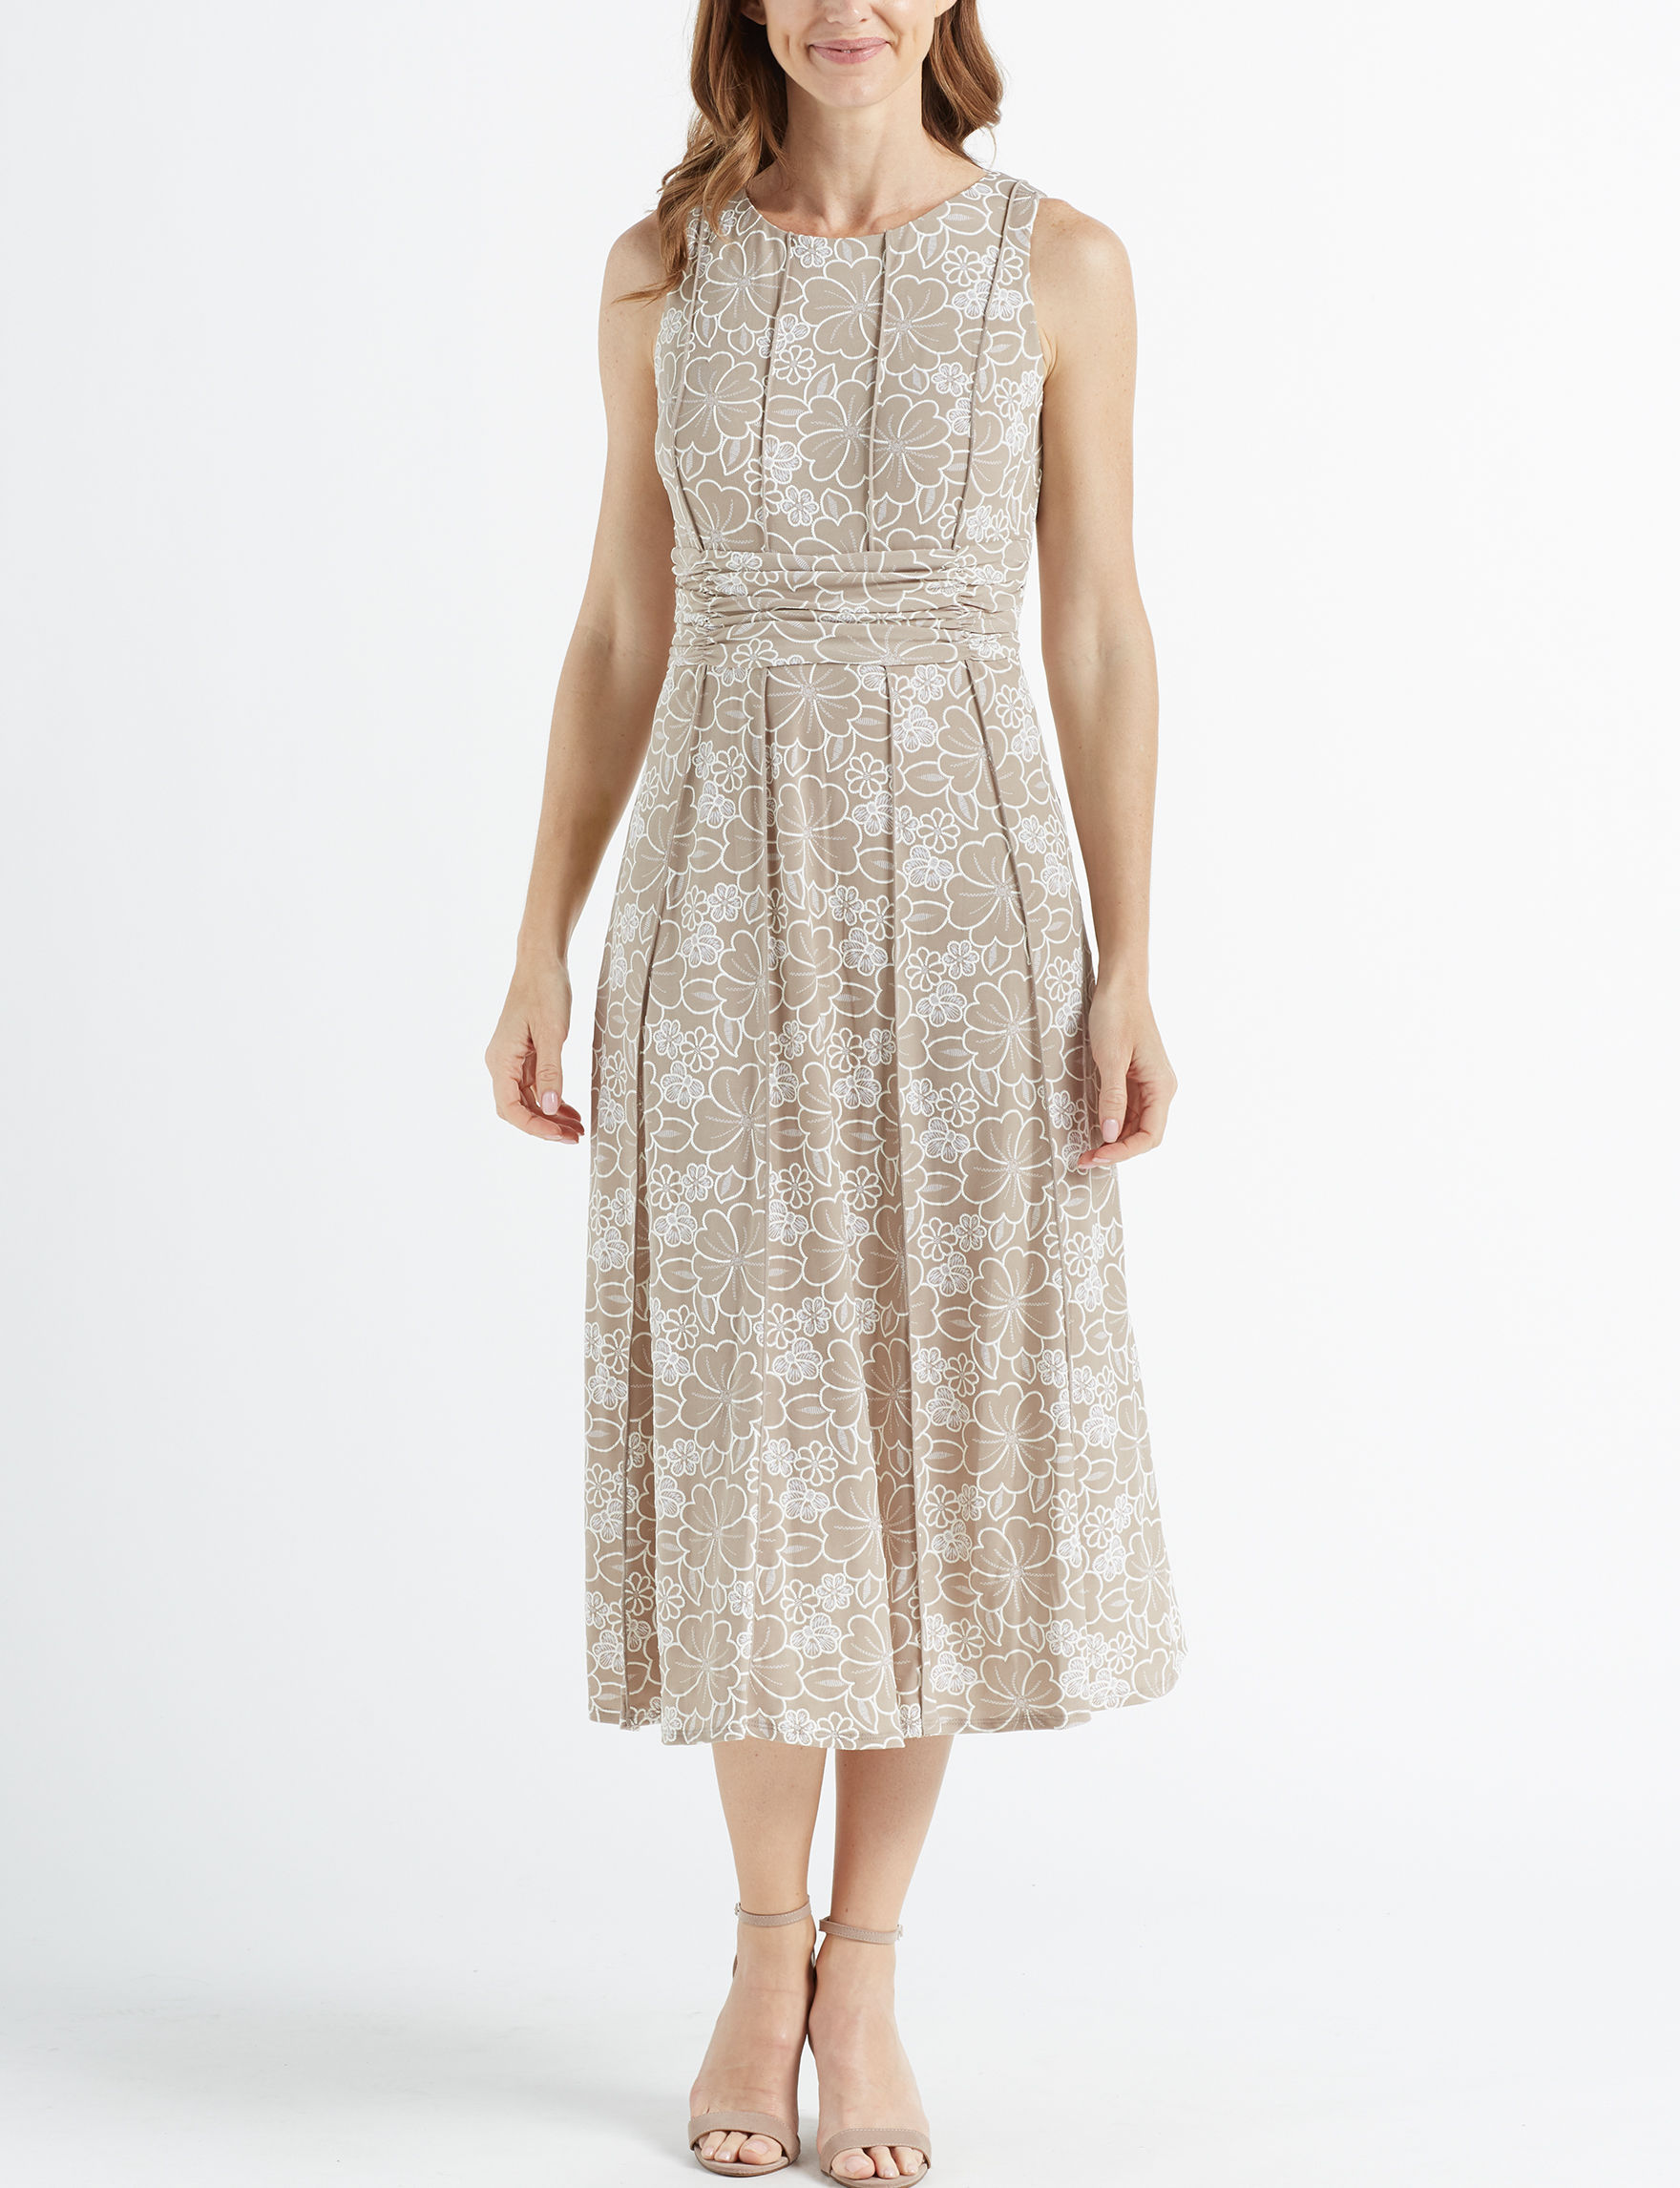 Perceptions Taupe/ White Everyday & Casual A-line Dresses